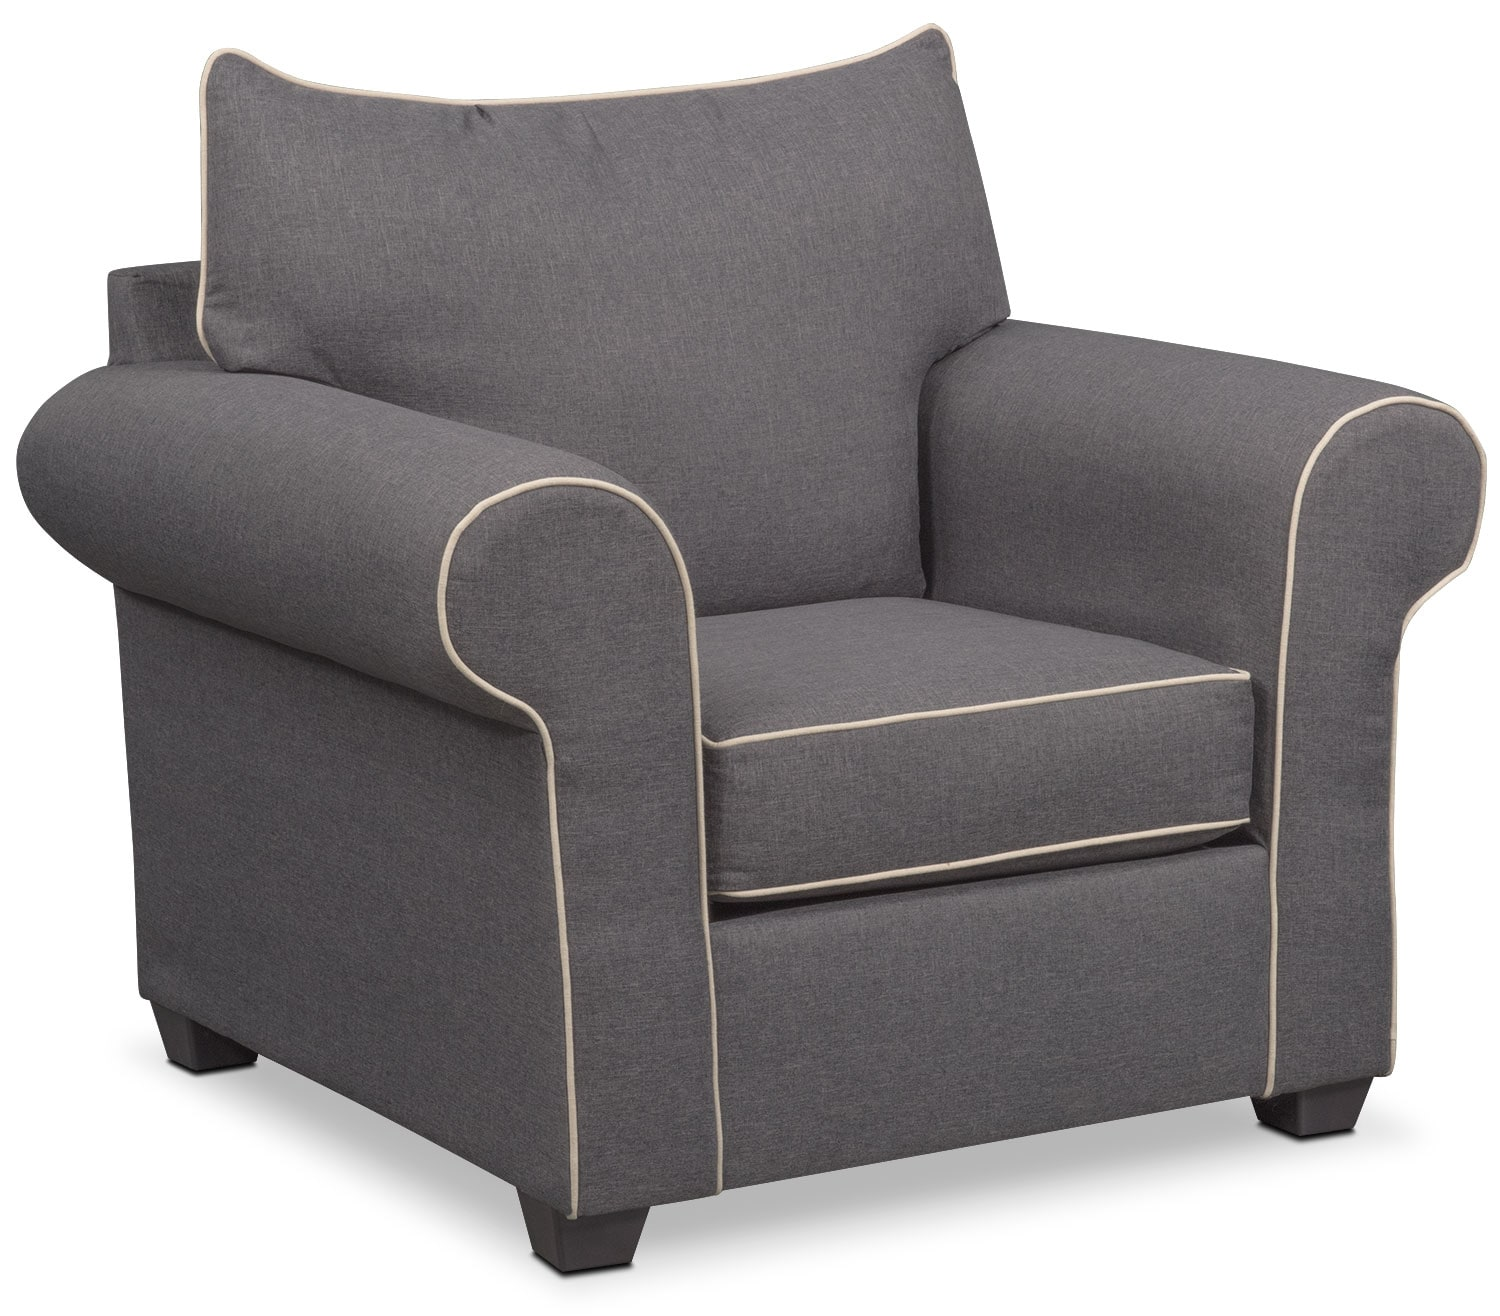 Living Room Furniture - Carla Chair - Gray